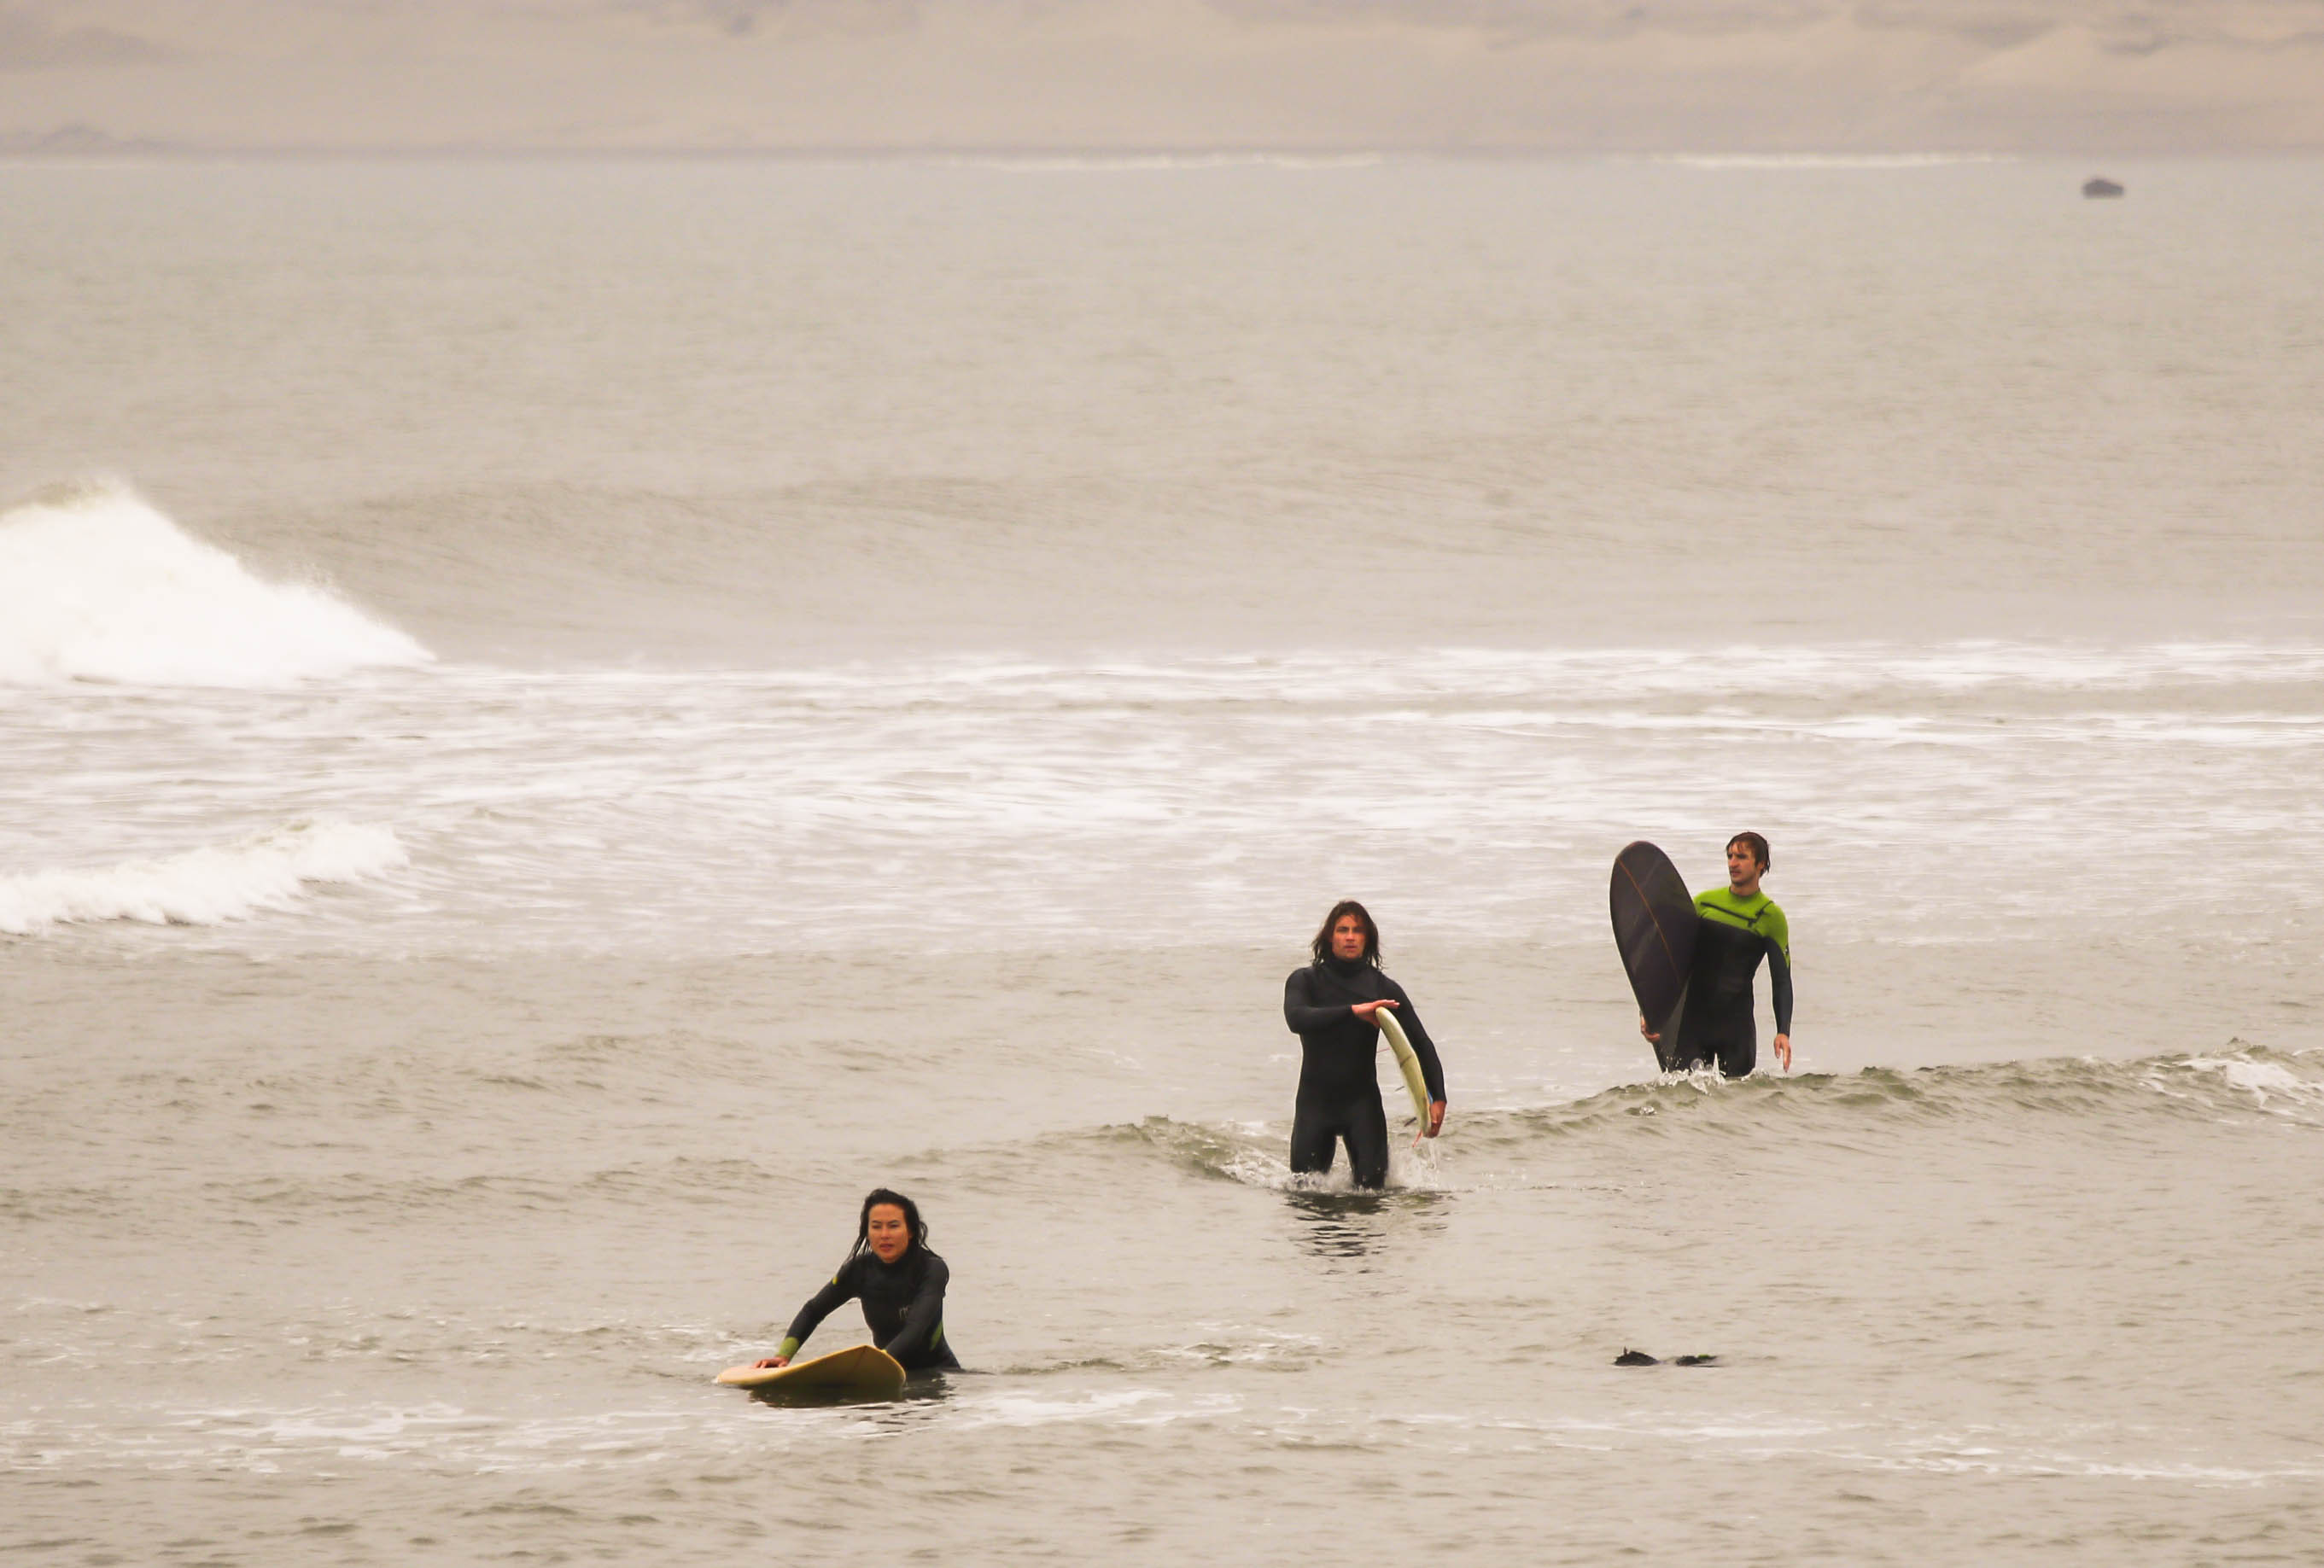 Family photo surfing 3